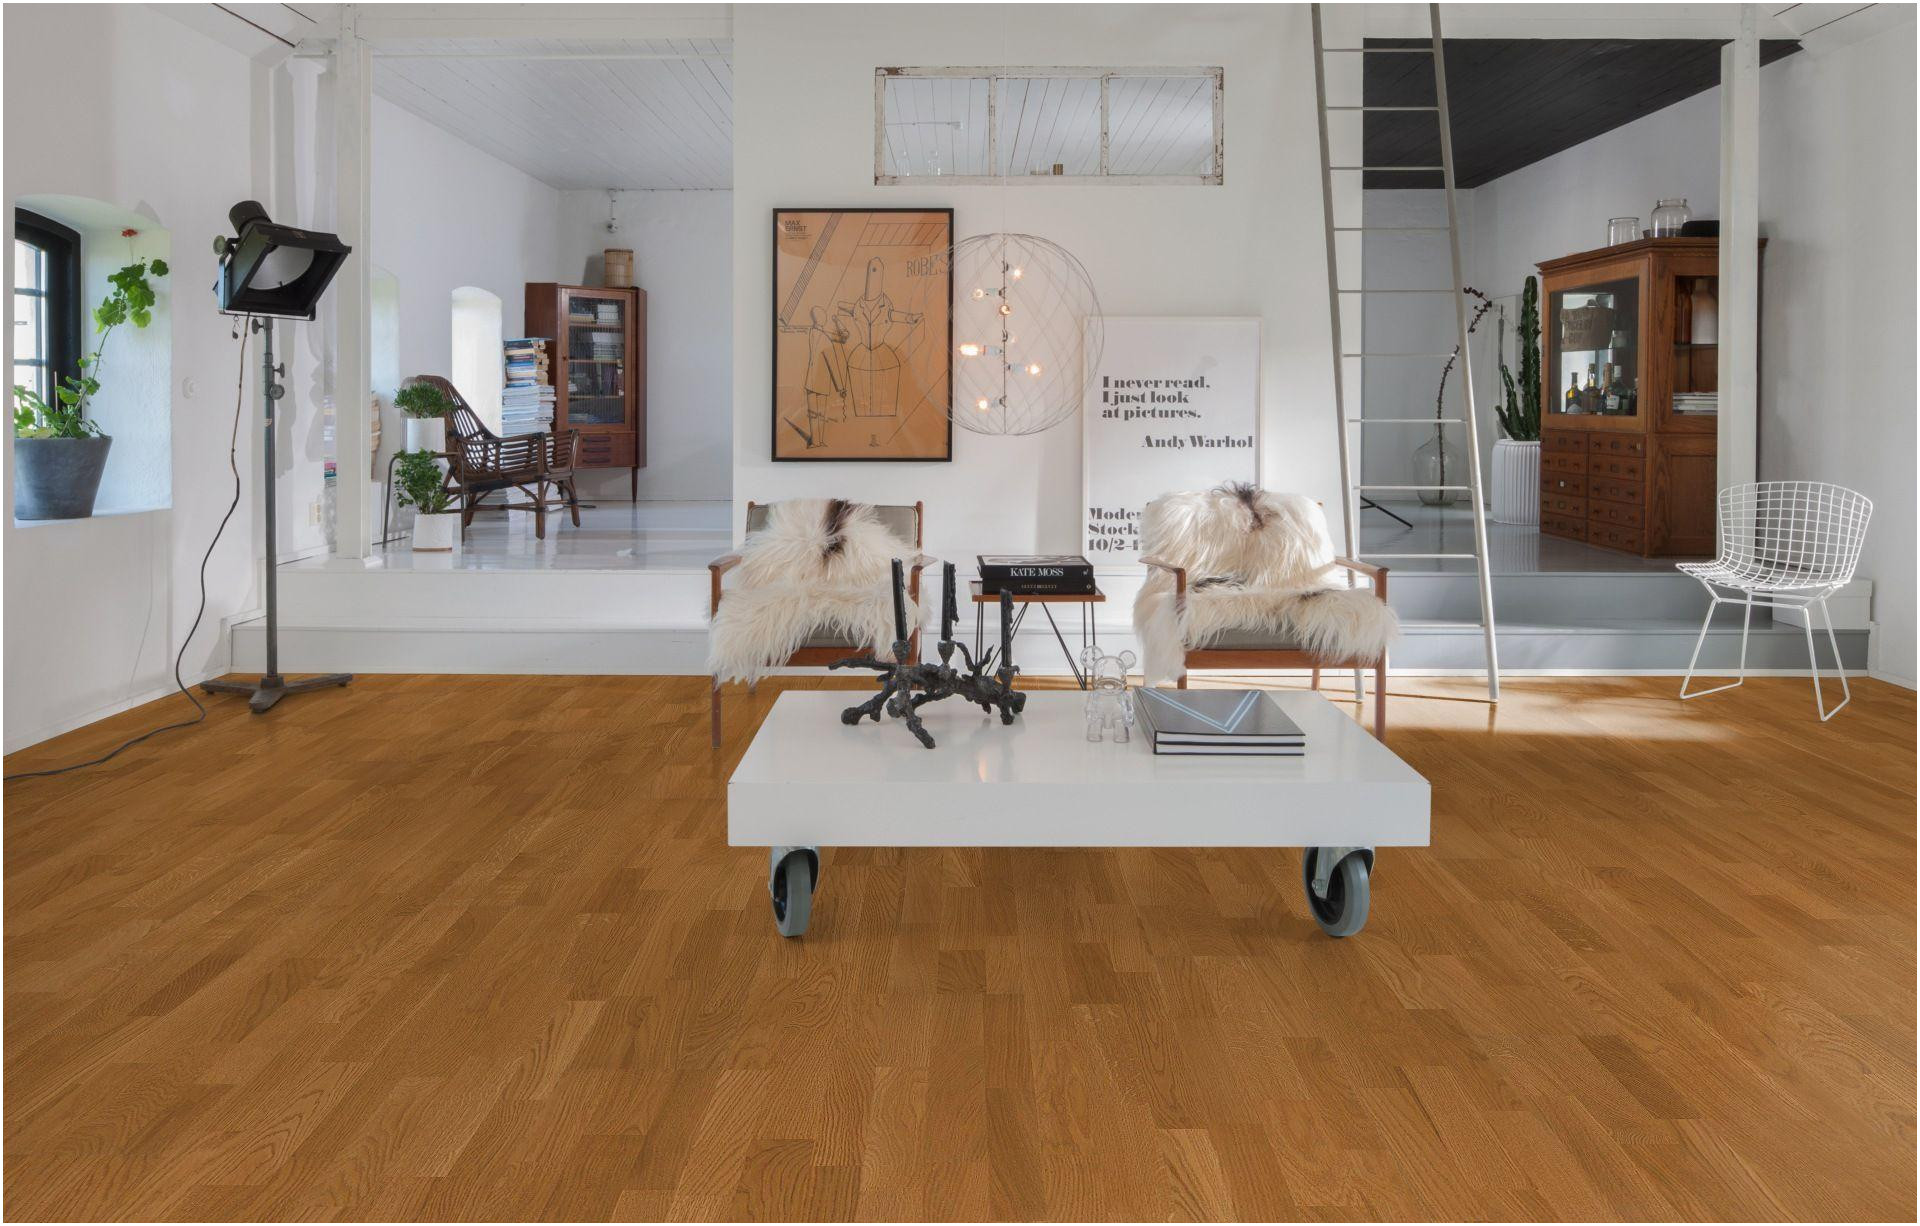 how much is hardwood flooring at lowes of waterproofing wood furniture ivegotwoodfurniture com in waterproofing wood furniture home design waterproof flooring lowes fresh ua wood floors cheap